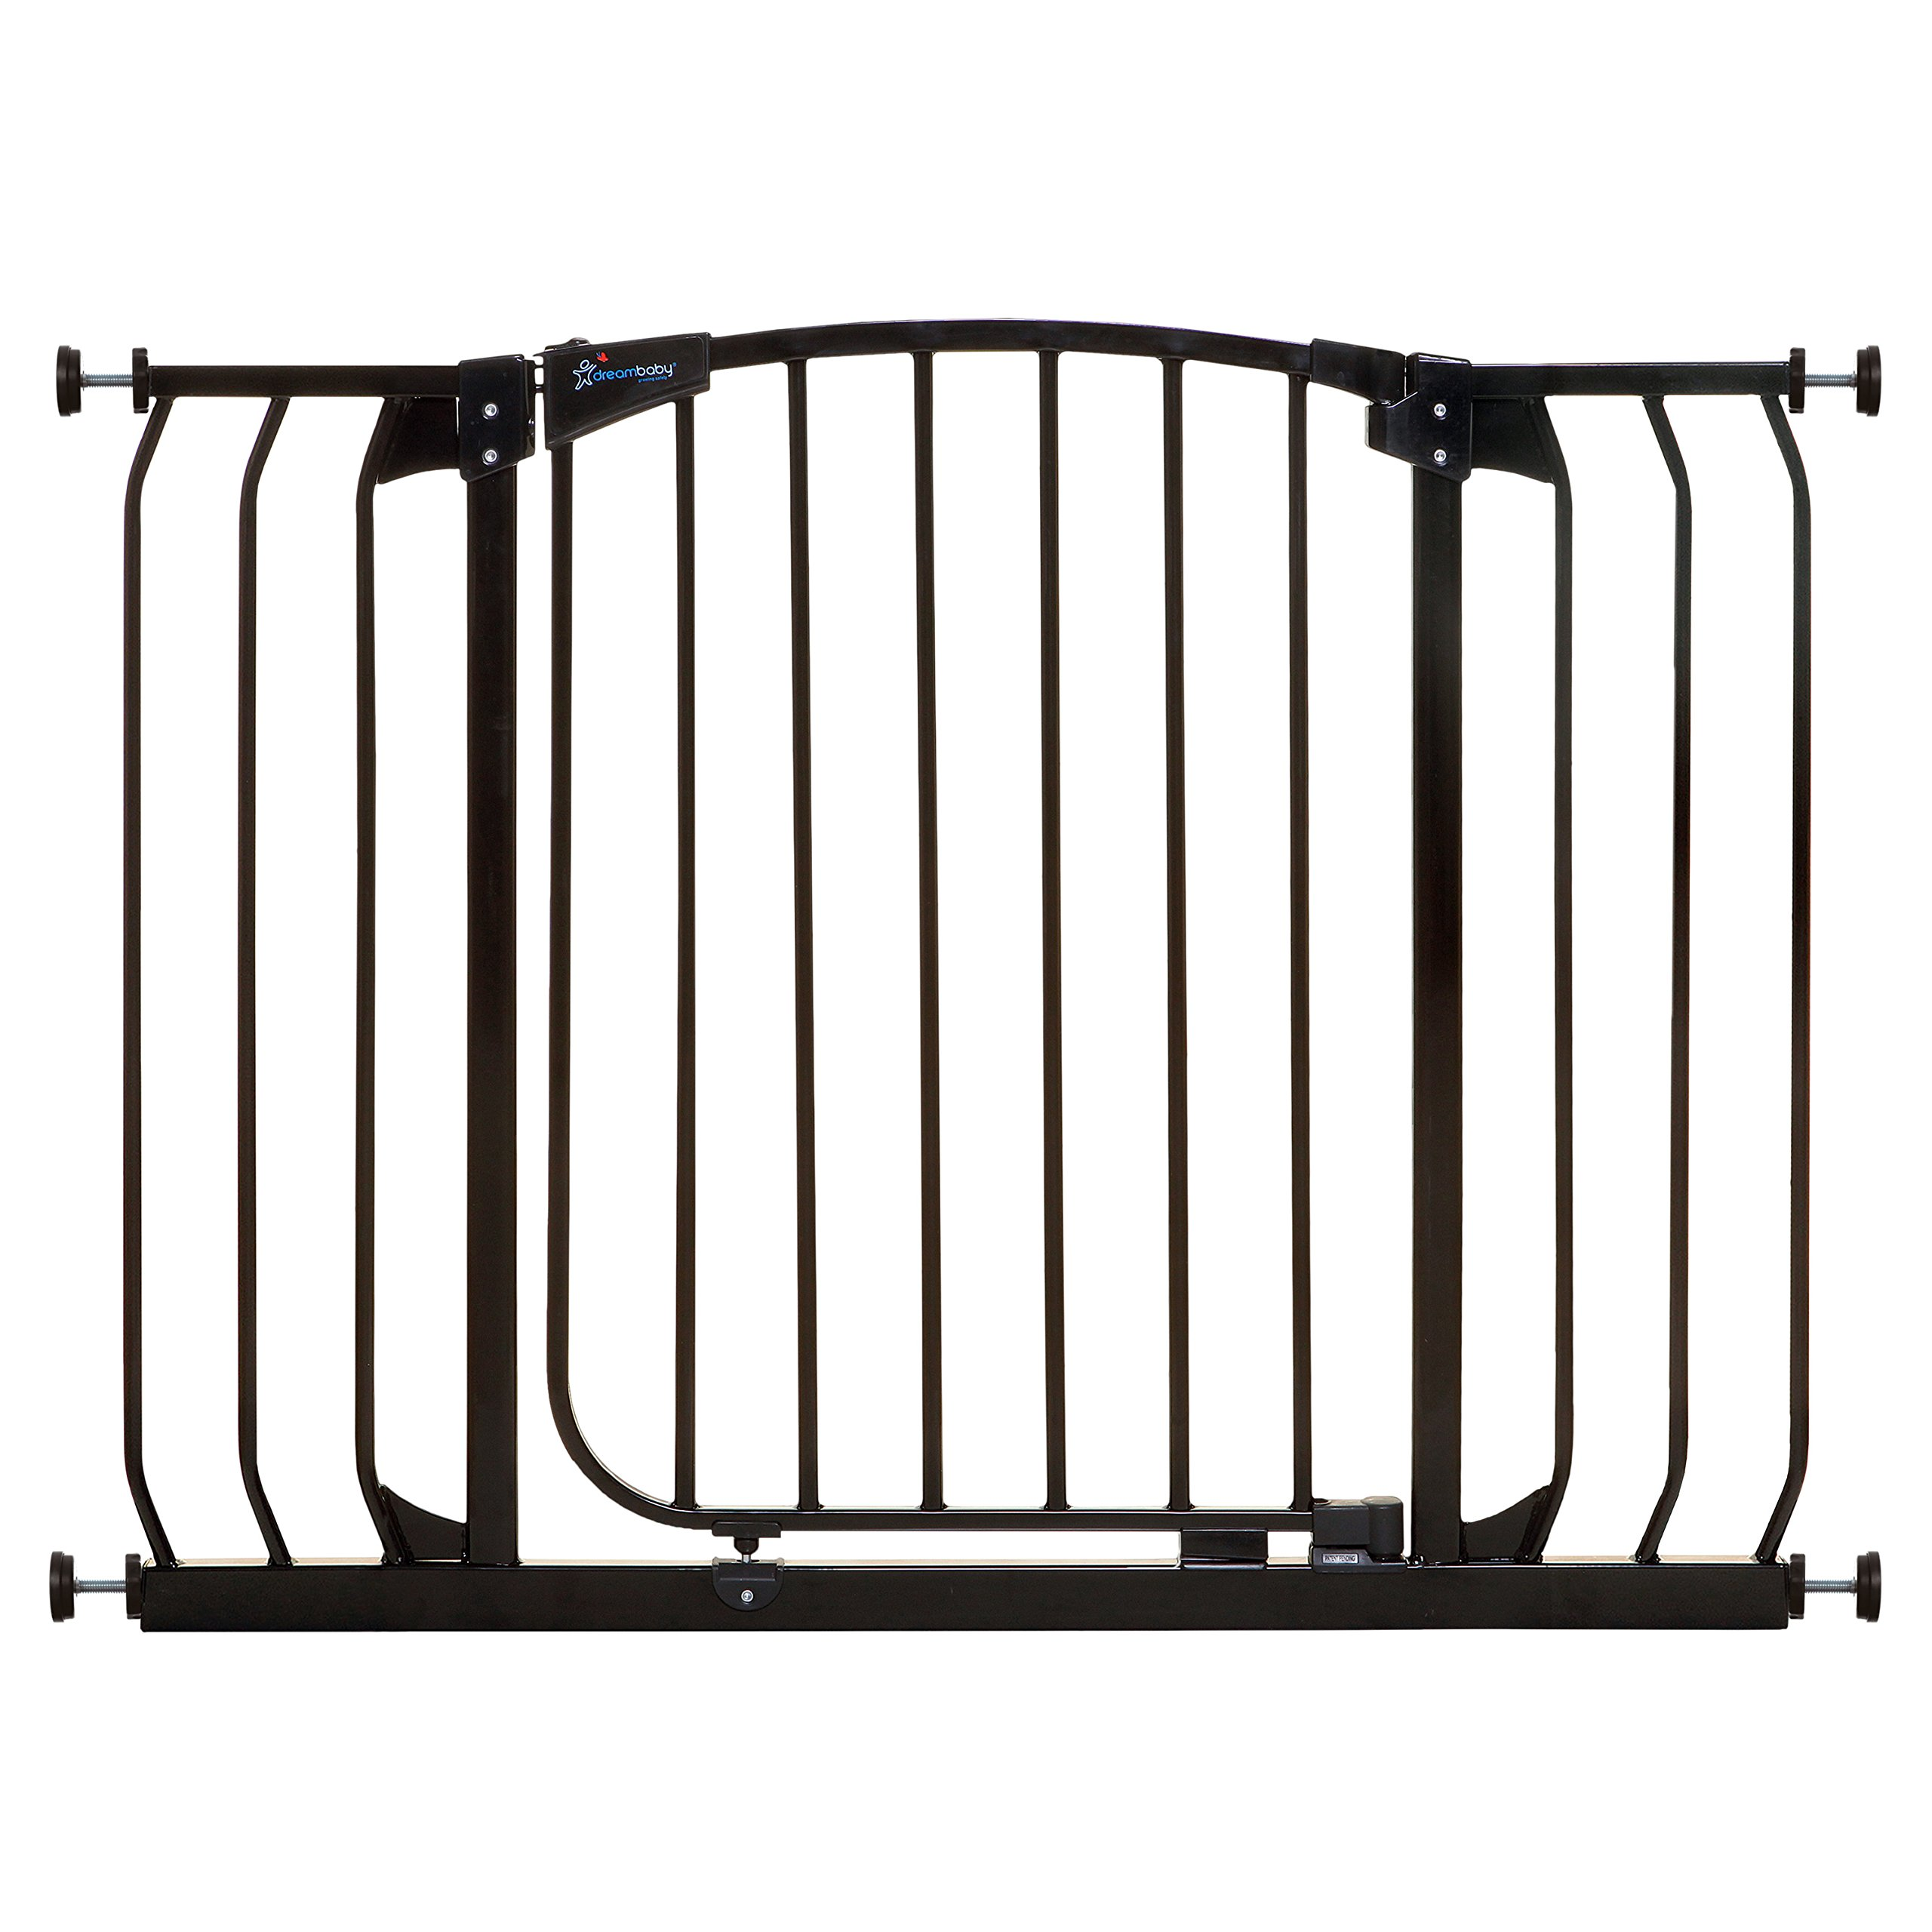 Dreambaby Chelsea Extra Wide Auto Close Security Gate in Black by Dreambaby (Image #1)